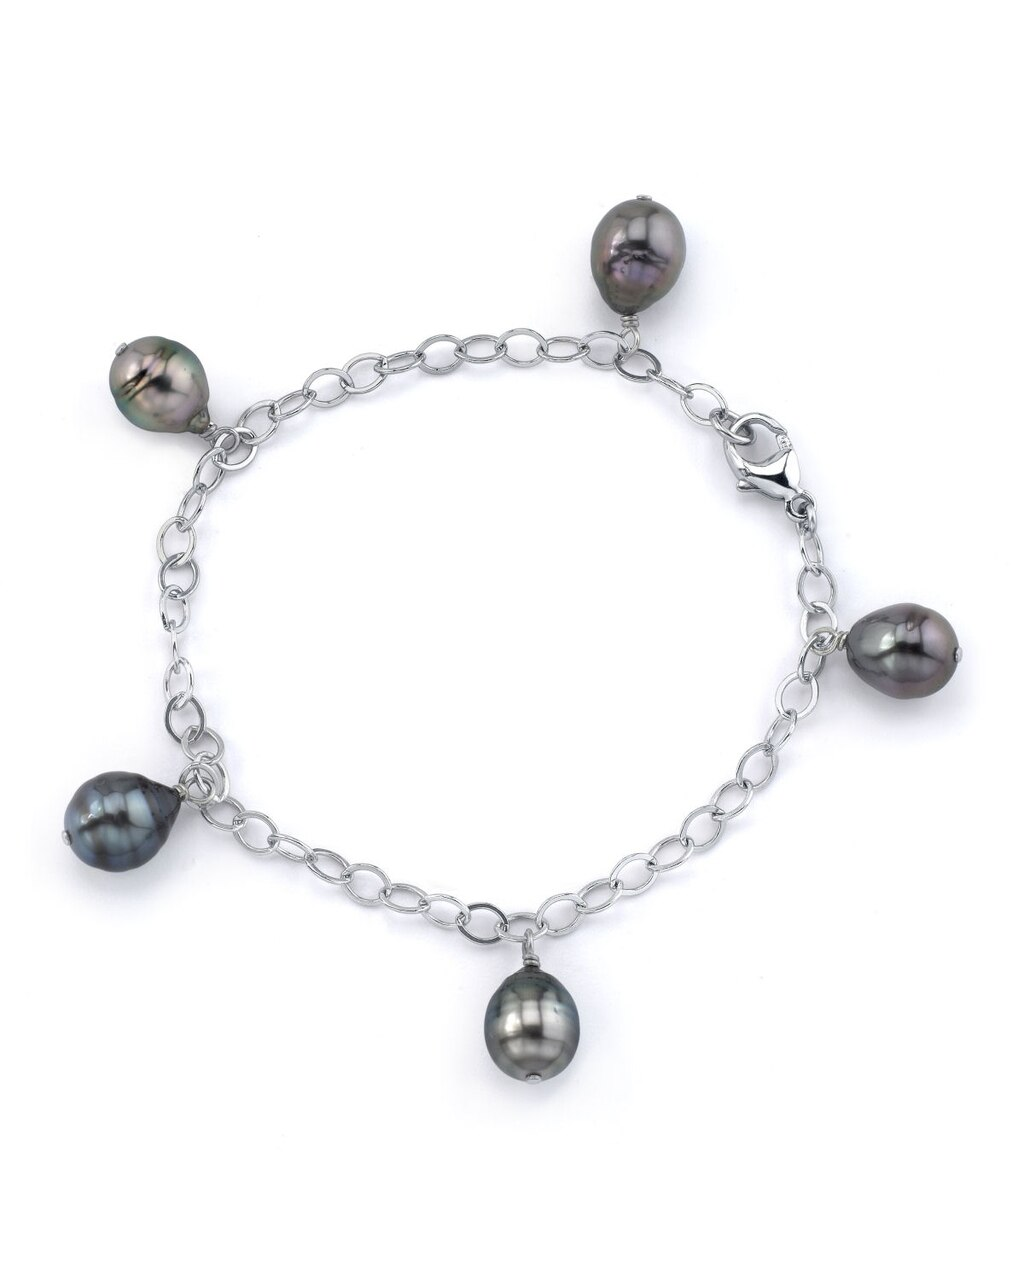 This exquisite bracelet features 8.0-9.0mm Tahitian South Sea pearls, handpicked for their radiant luster